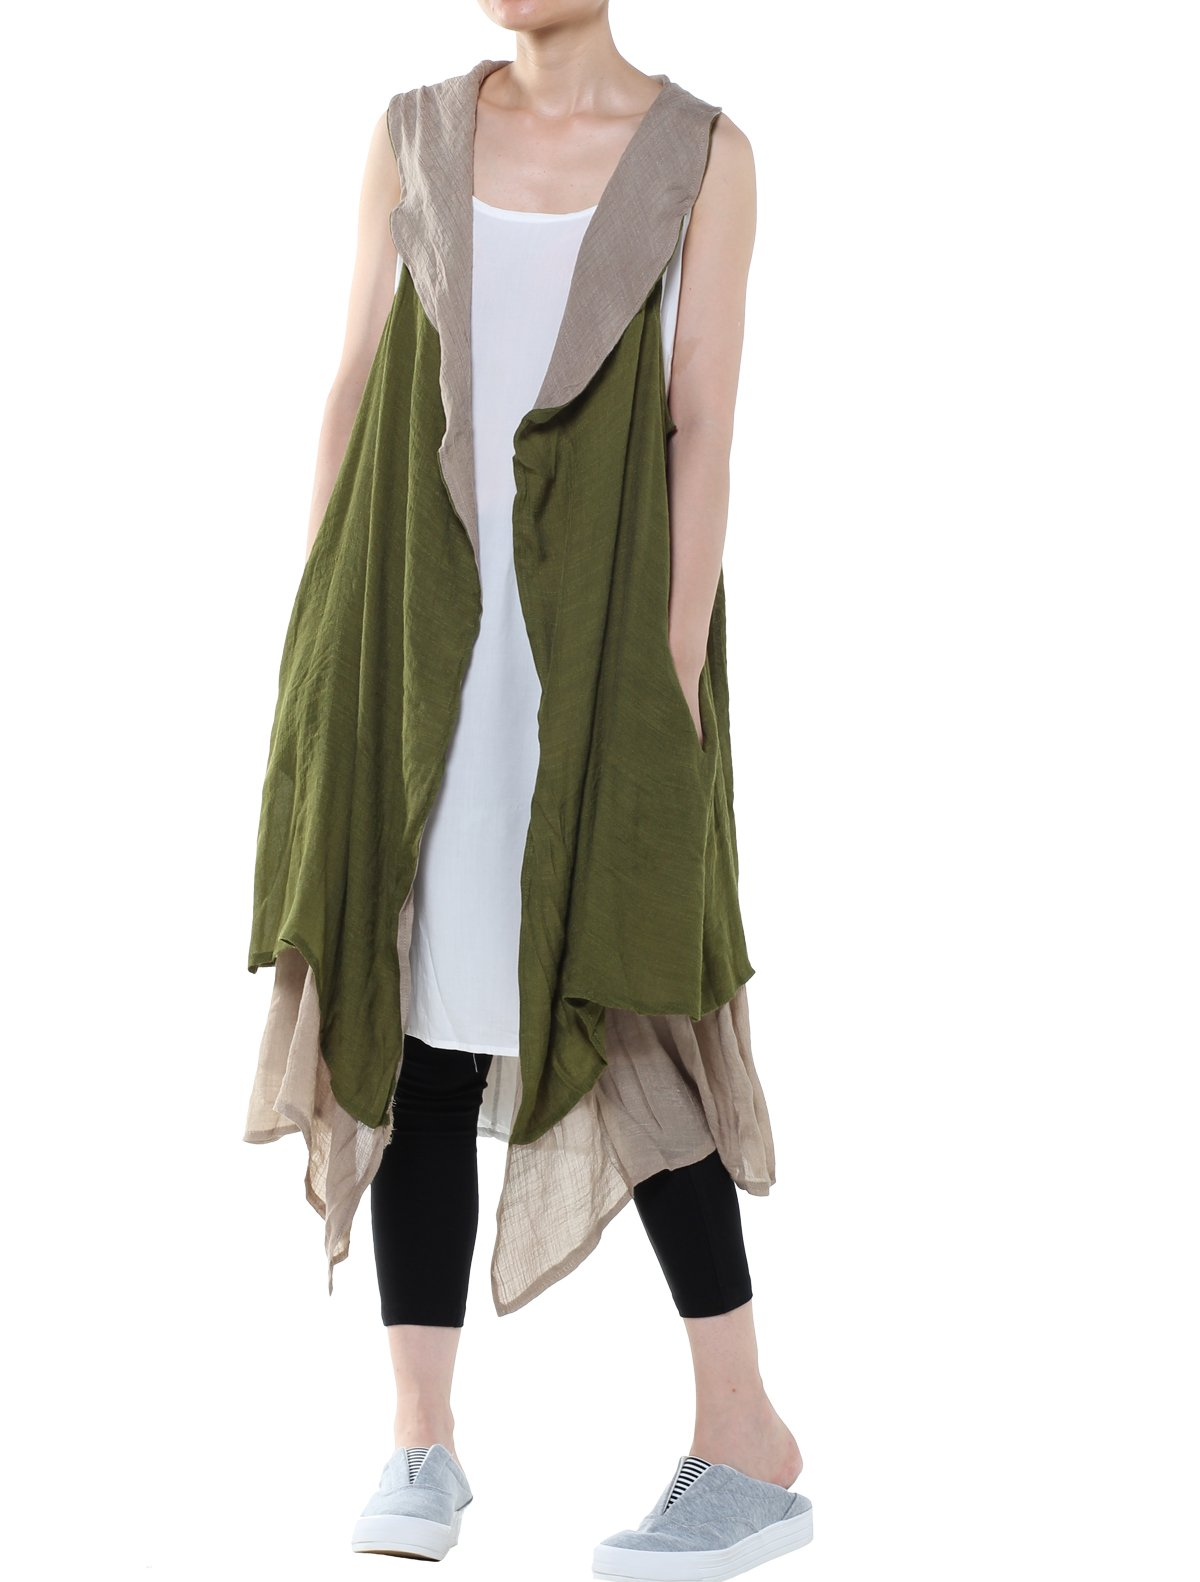 Minibee Women's Cotton Linen Cardigan Summer Thin Vest Two Side Pockets (Style 1 Green)